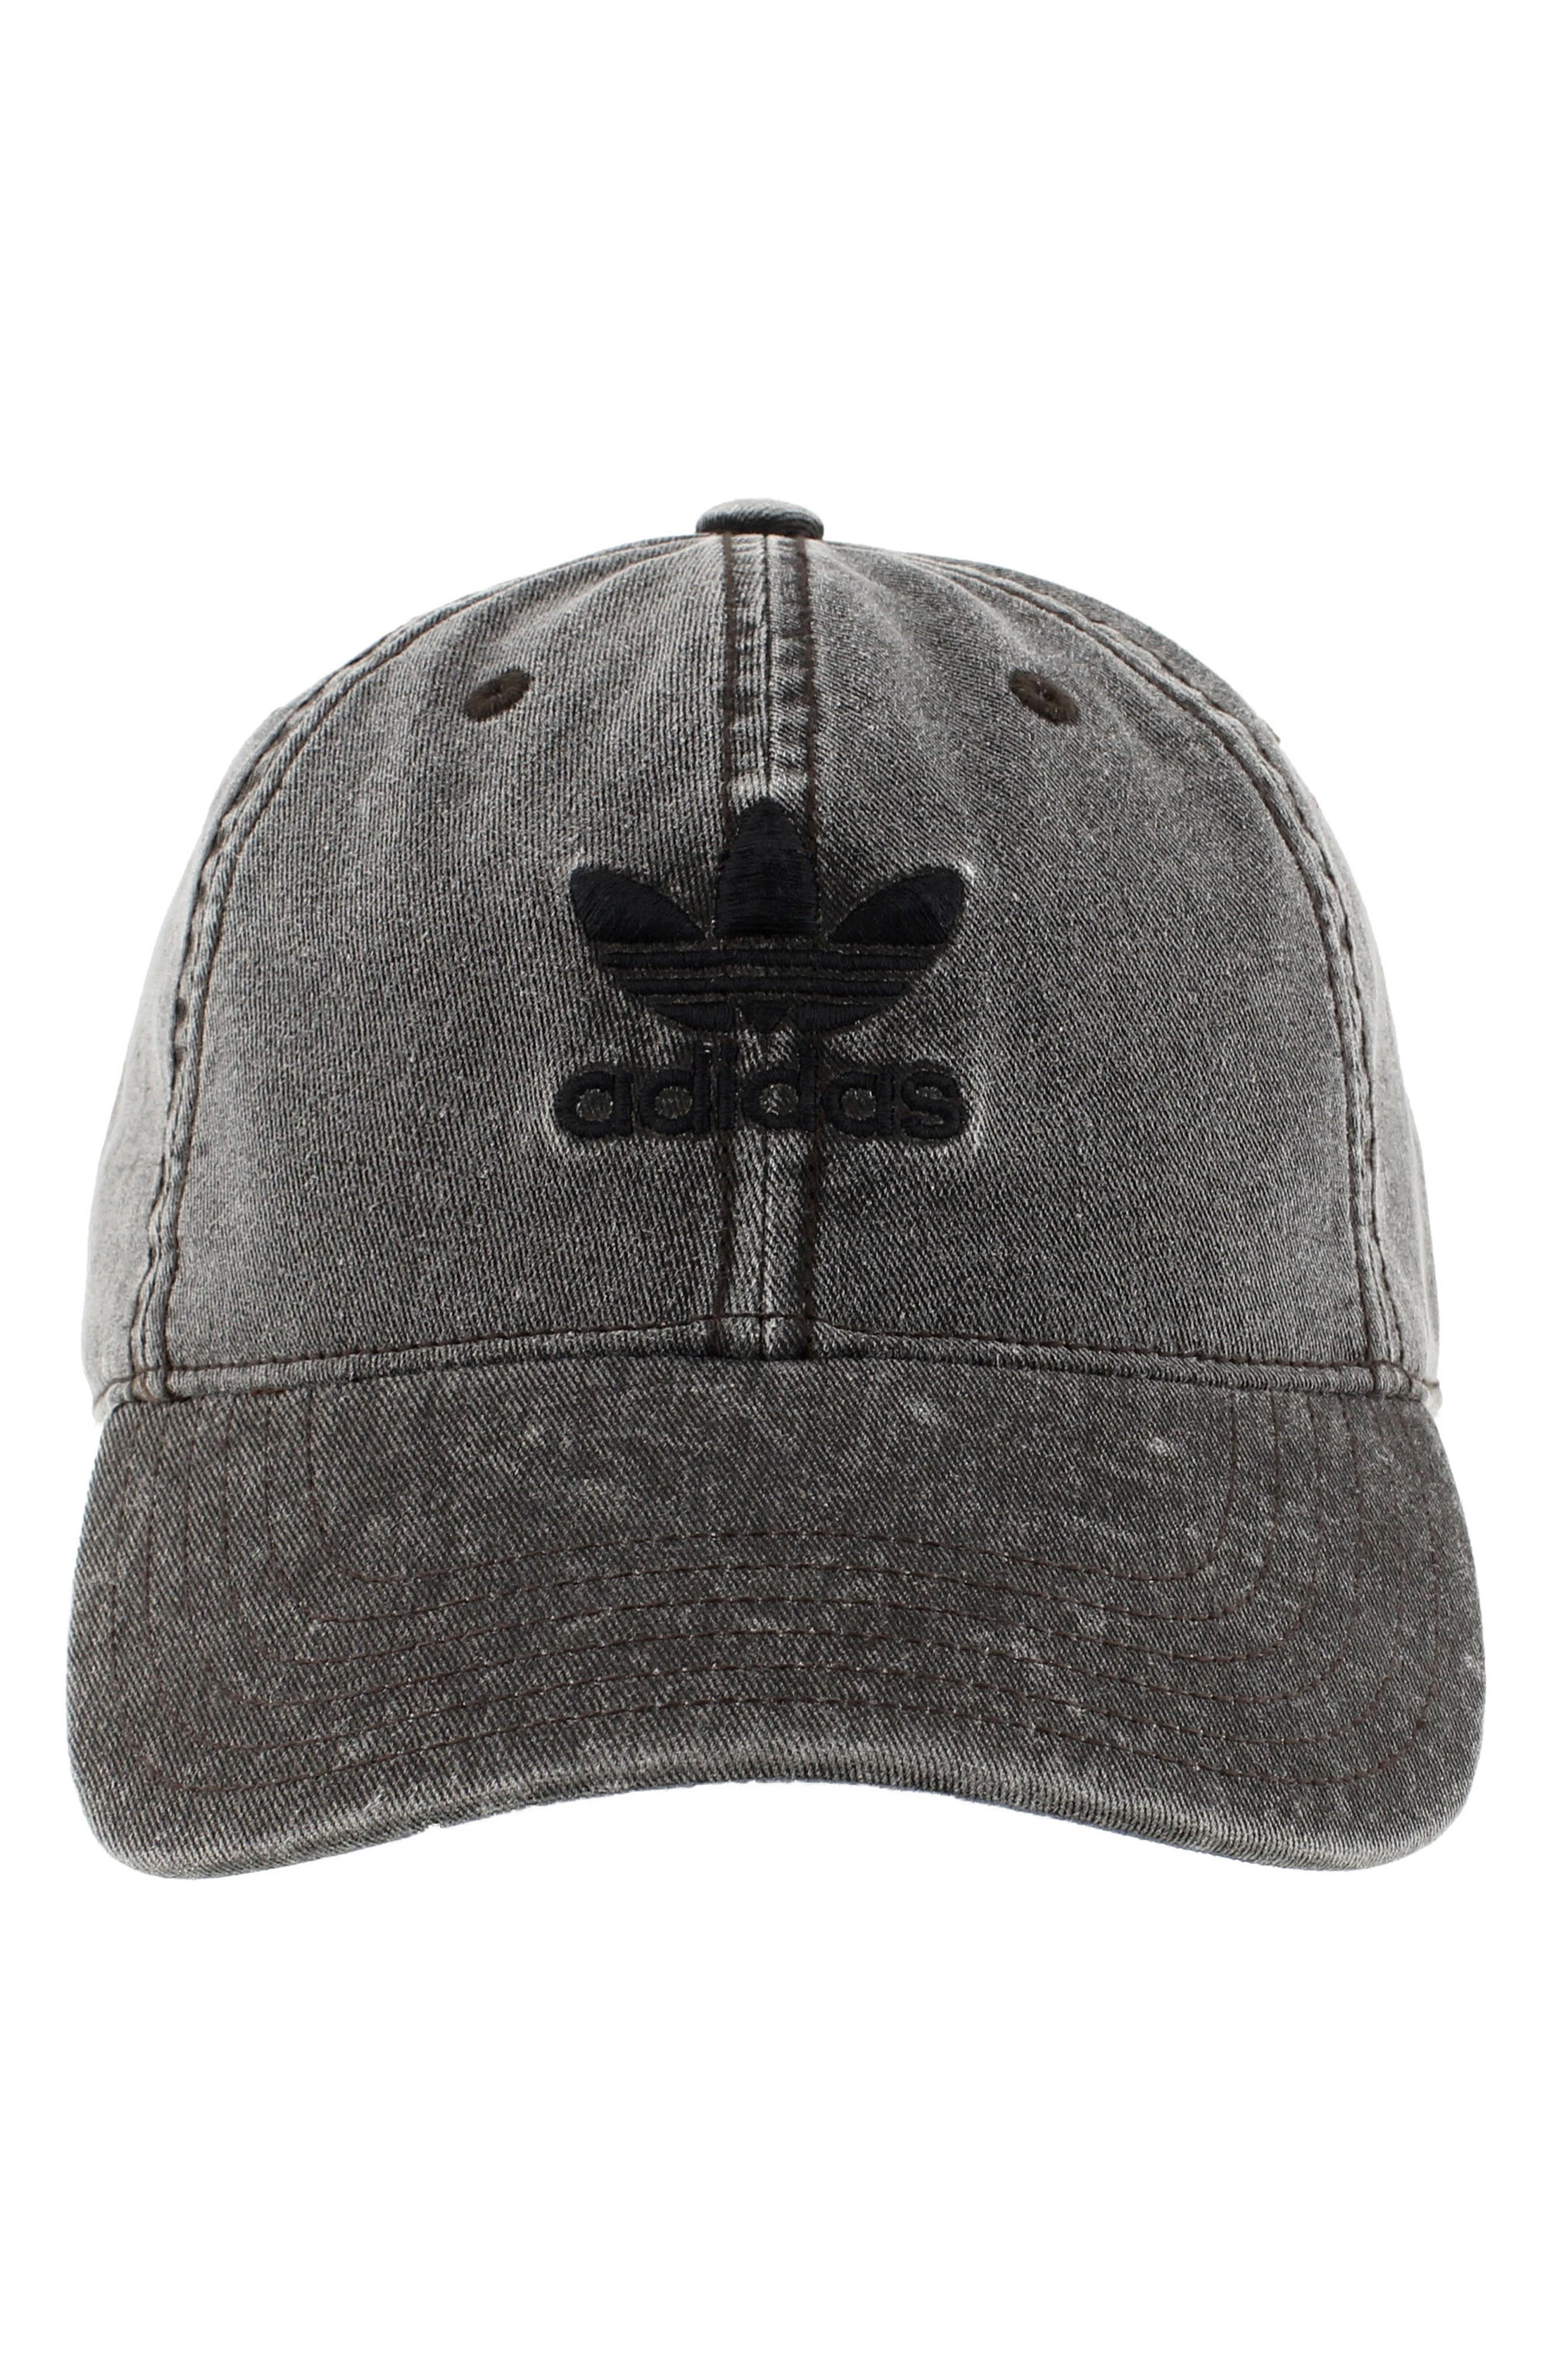 31119265906 discount adidas originals precurve washed cap 8ff57 76e4c  clearance adidas  originals relaxed logo baseball cap black charcoal d69ee cb096